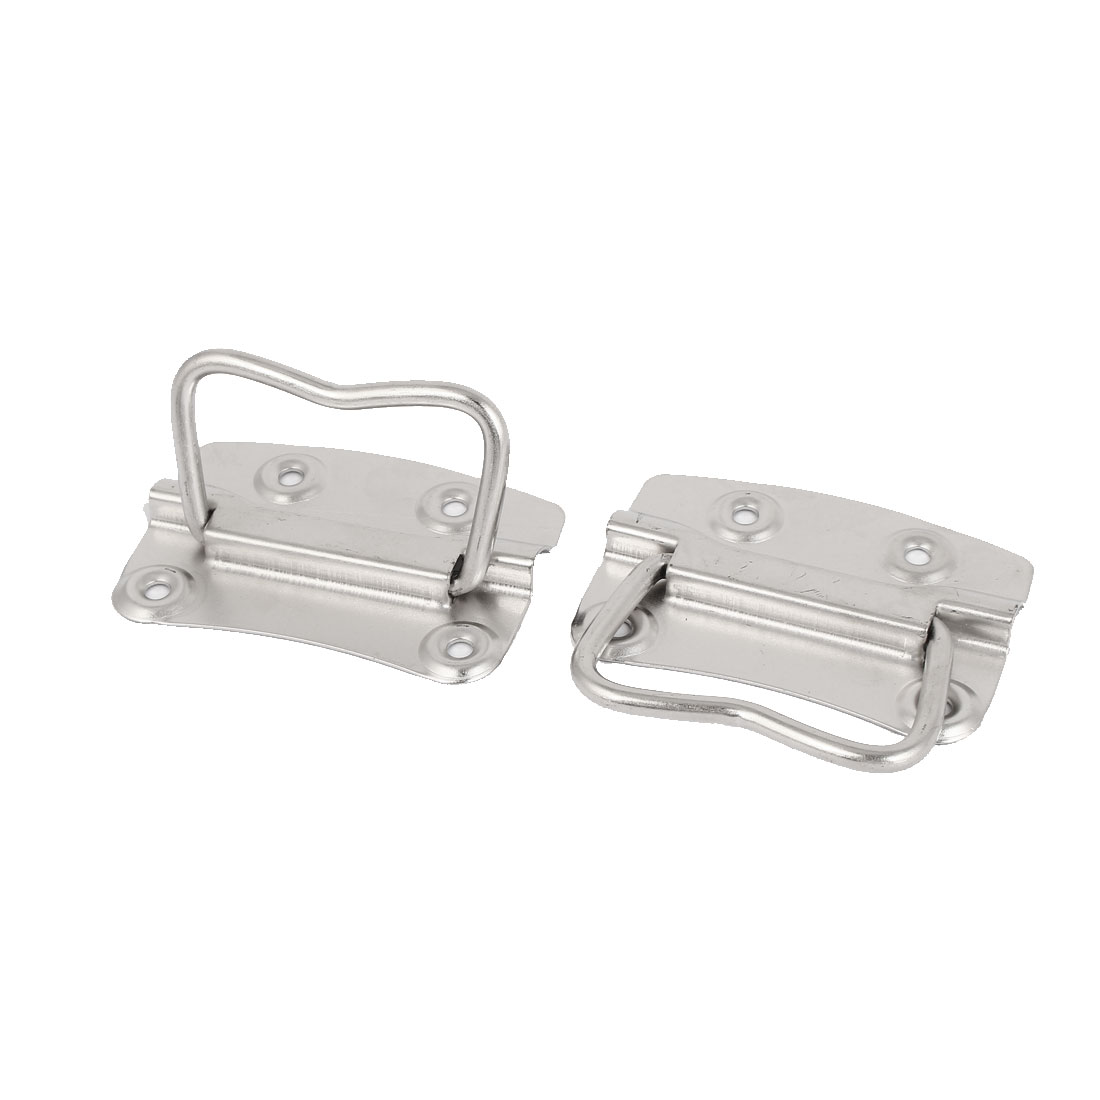 "Metal Toolbox Crates Boxes Puller Chest Handle Silver Tone 4"" Length 4pcs - image 1 of 2"